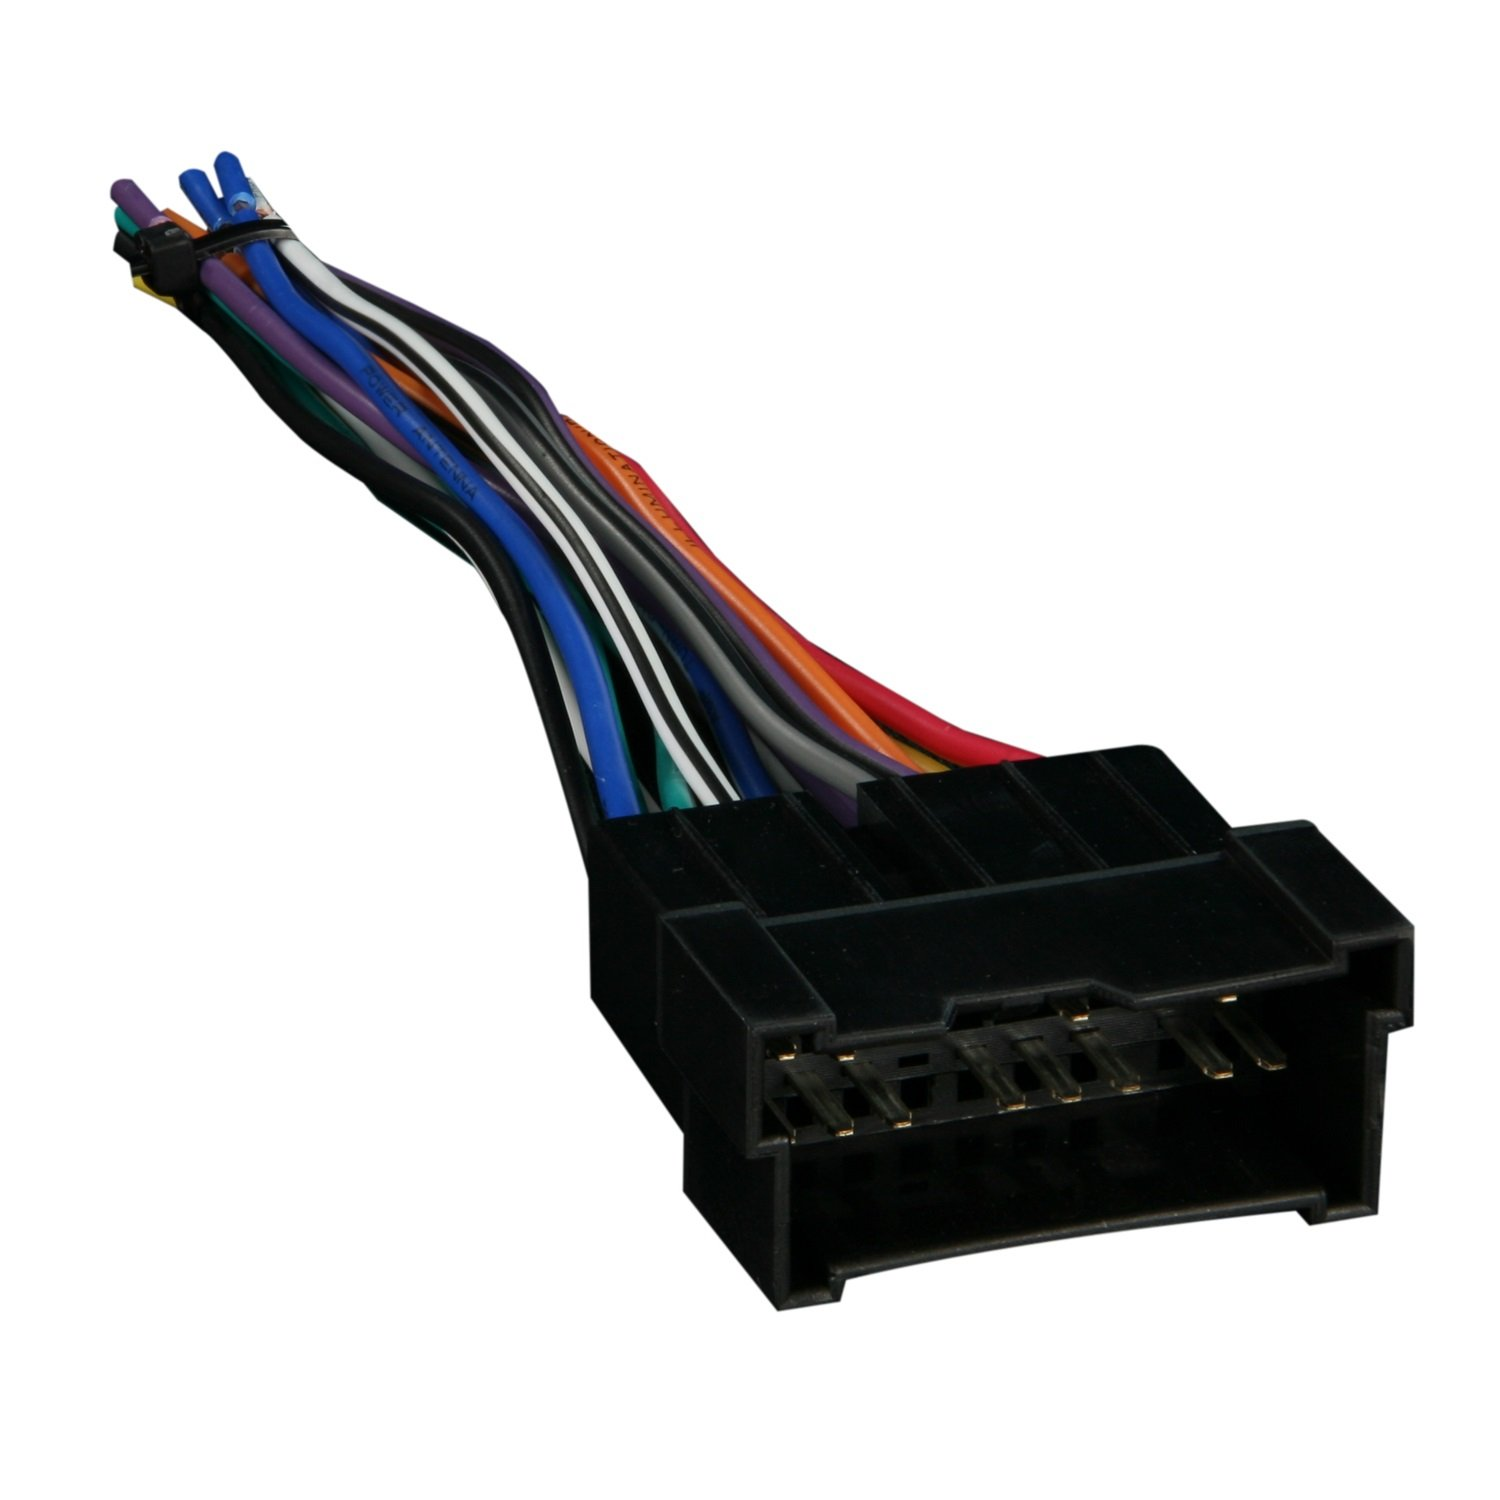 617yeBmOquL._SL1500_ amazon com metra 70 7301 radio wiring harness for hyundai kia 99 hyundai wiring harness at bayanpartner.co